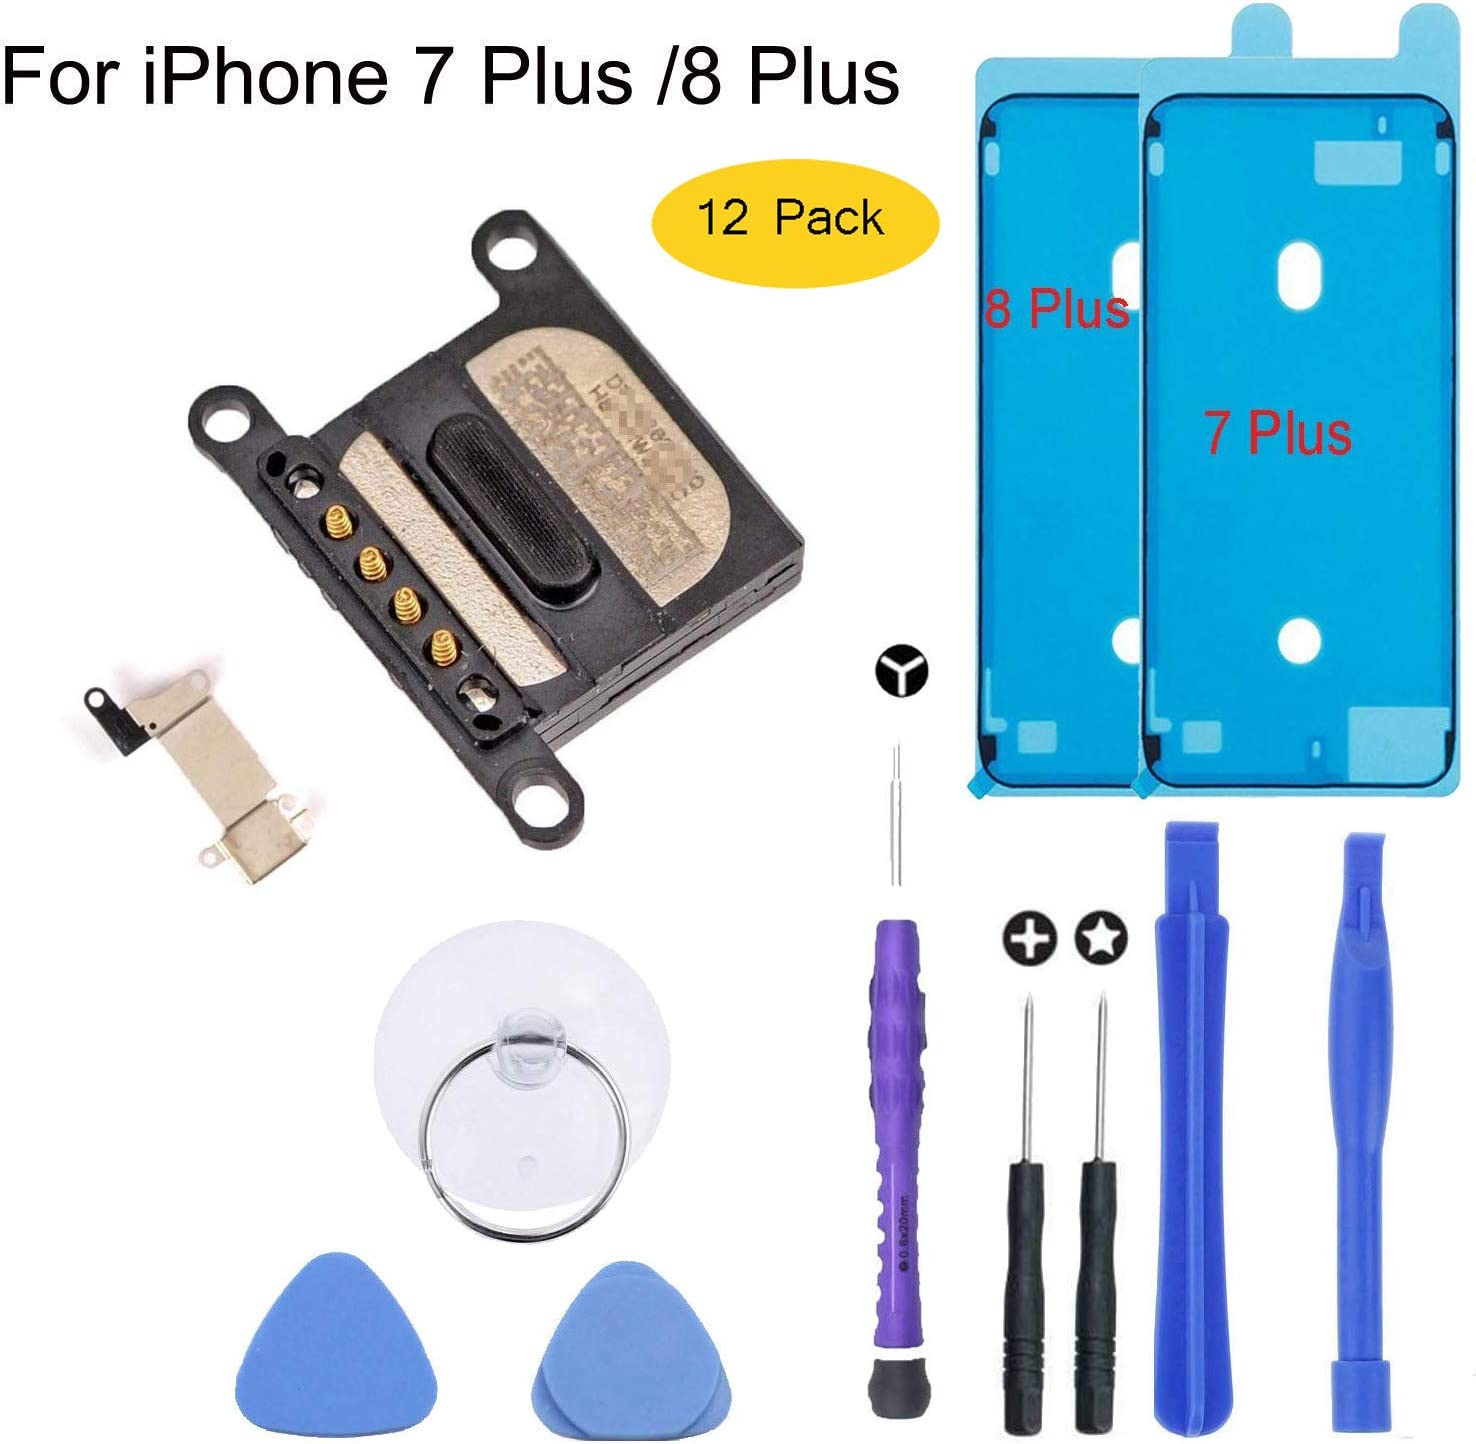 Earpiece Ear Speaker Replacement for iPhone 7 Plus,iPhone 8 Plus with Earpiece Metal Bracket and Tools and Screen Adhesive